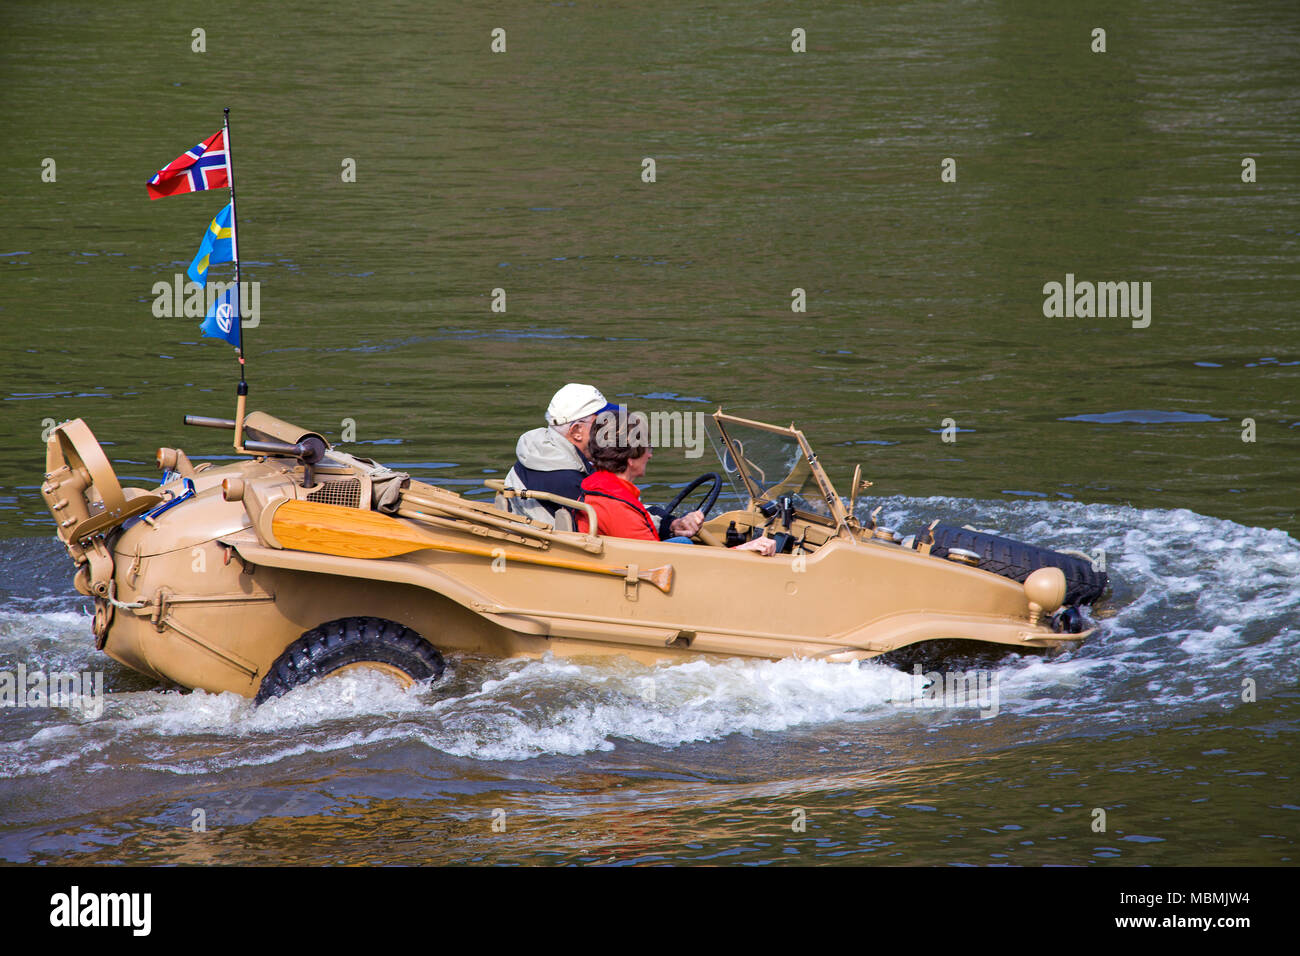 VW Typ 166, a german amphibious vehicle built at the 2nd world war on Moselle river, Bruttig-Fankel, Rhineland-Palatinate, Germany Stock Photo